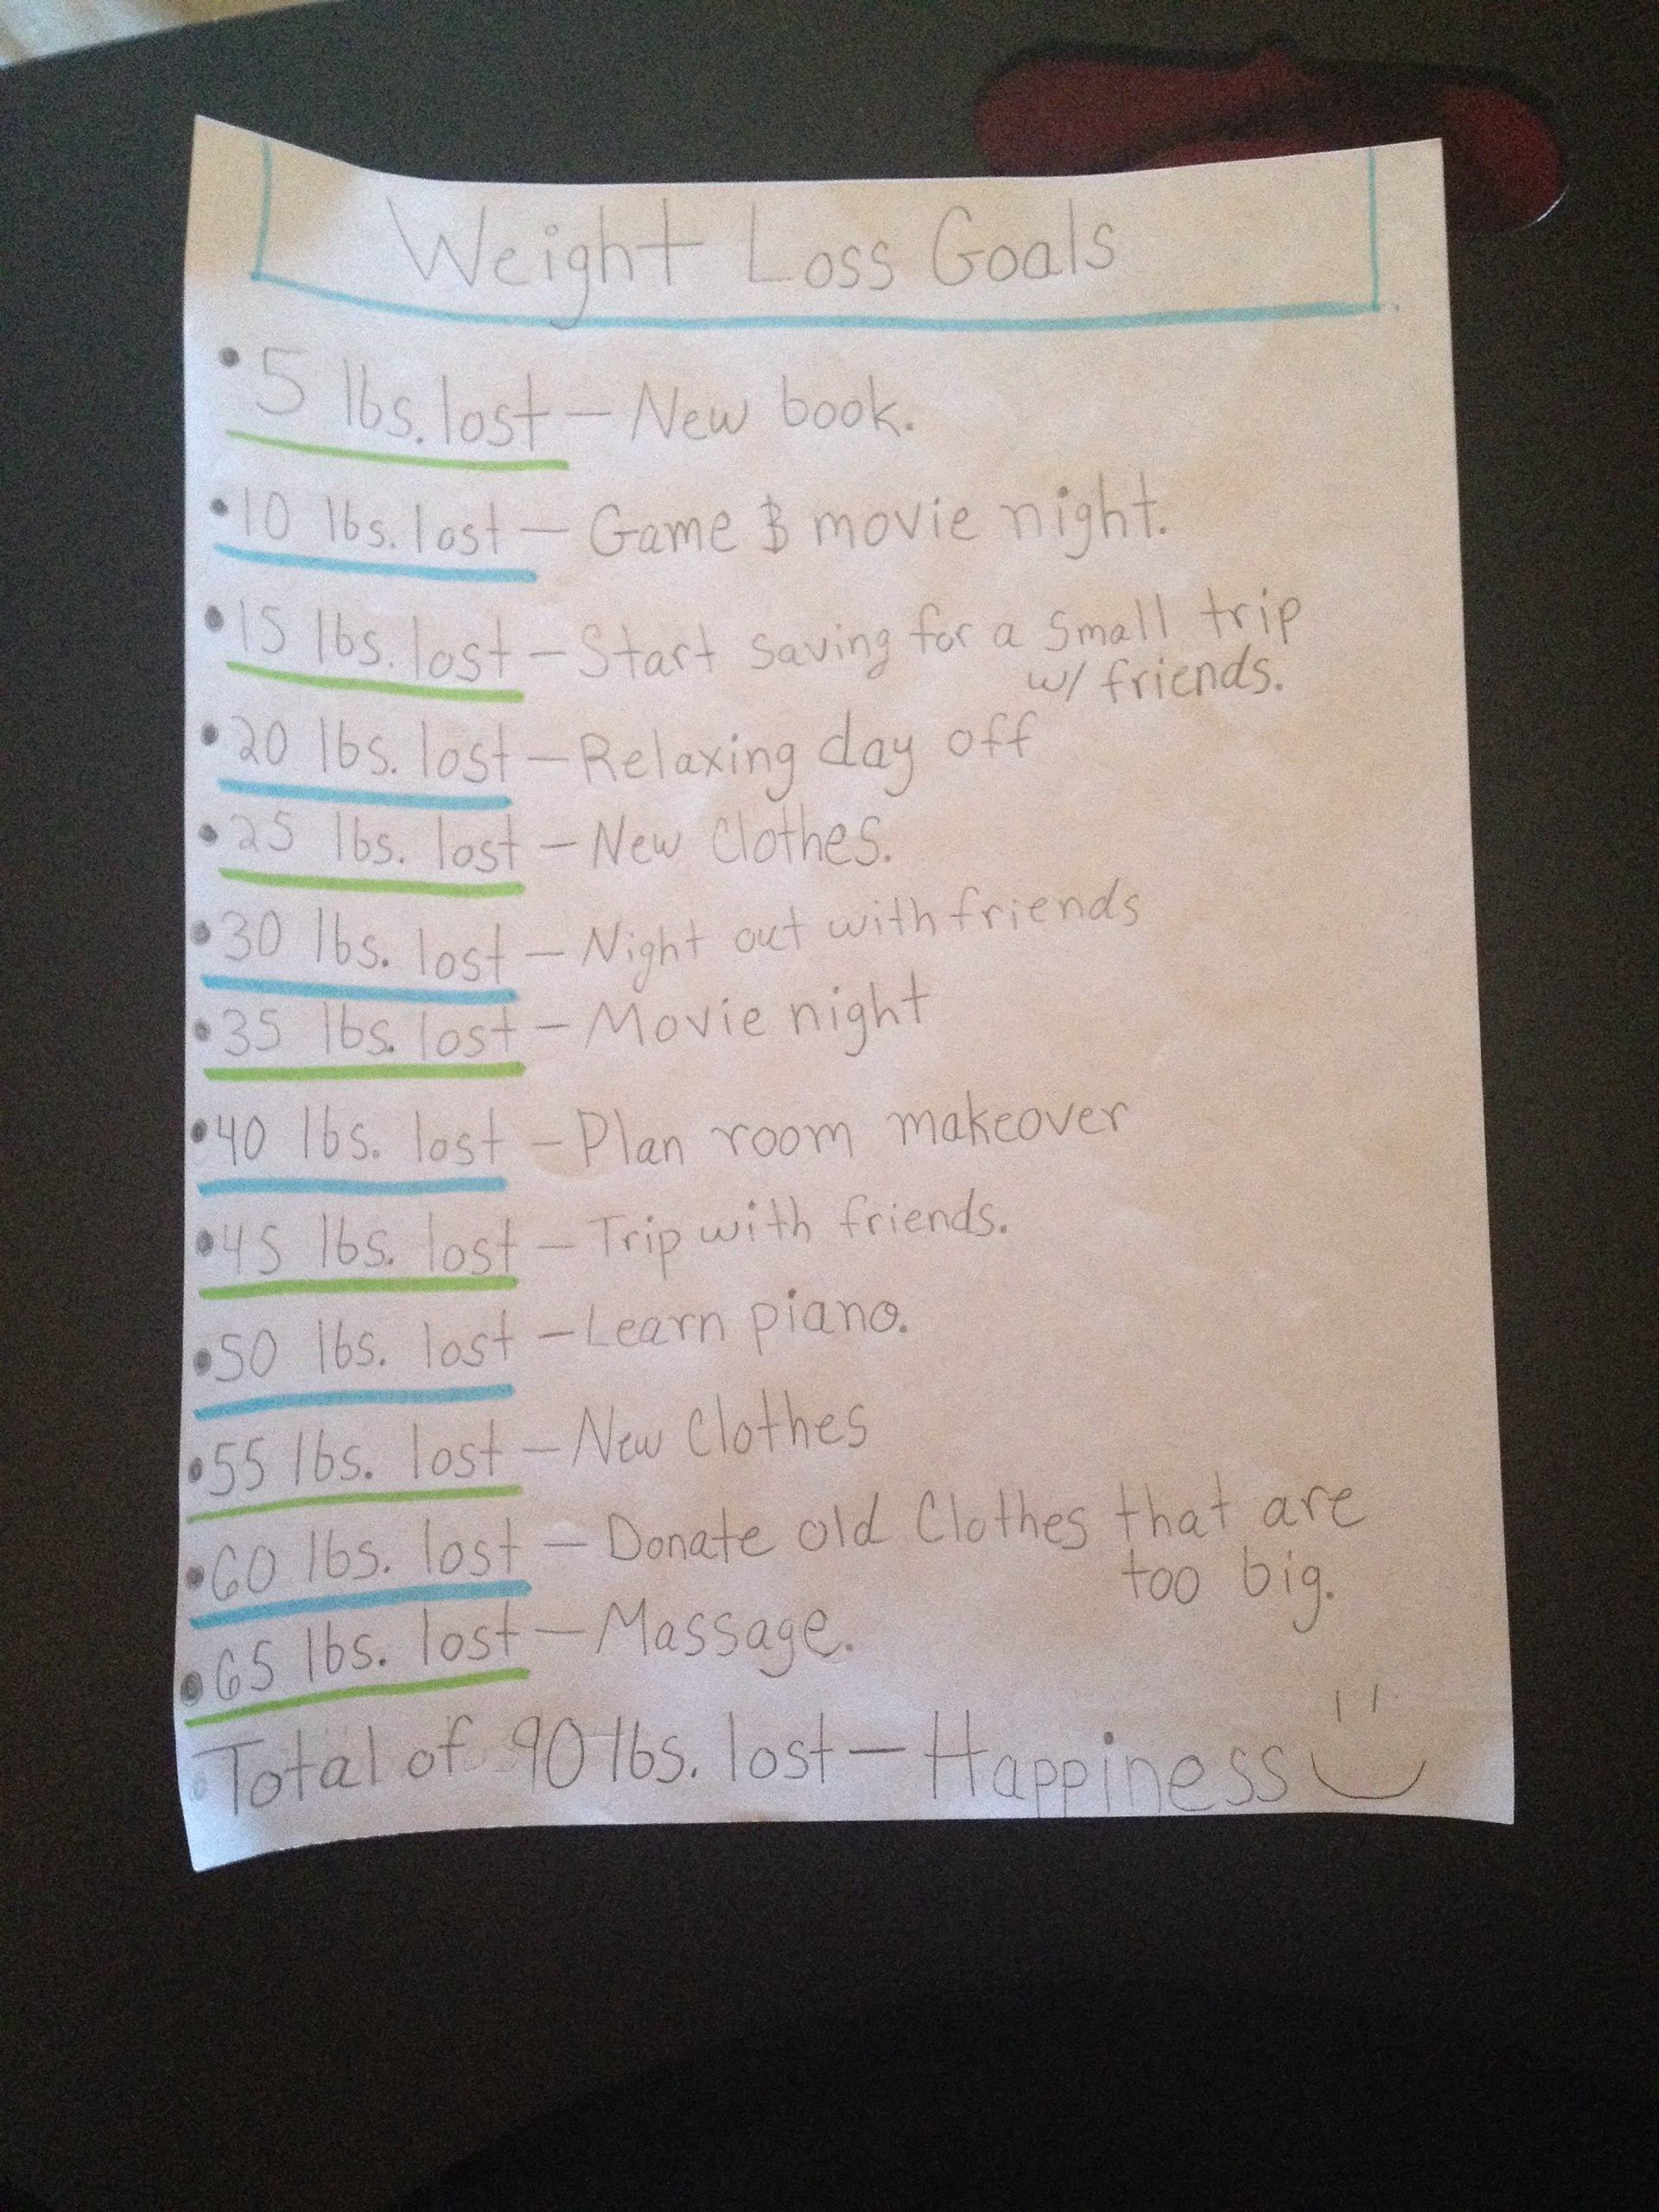 I Have Started A Weight Loss Goal Chart To Reward Myself